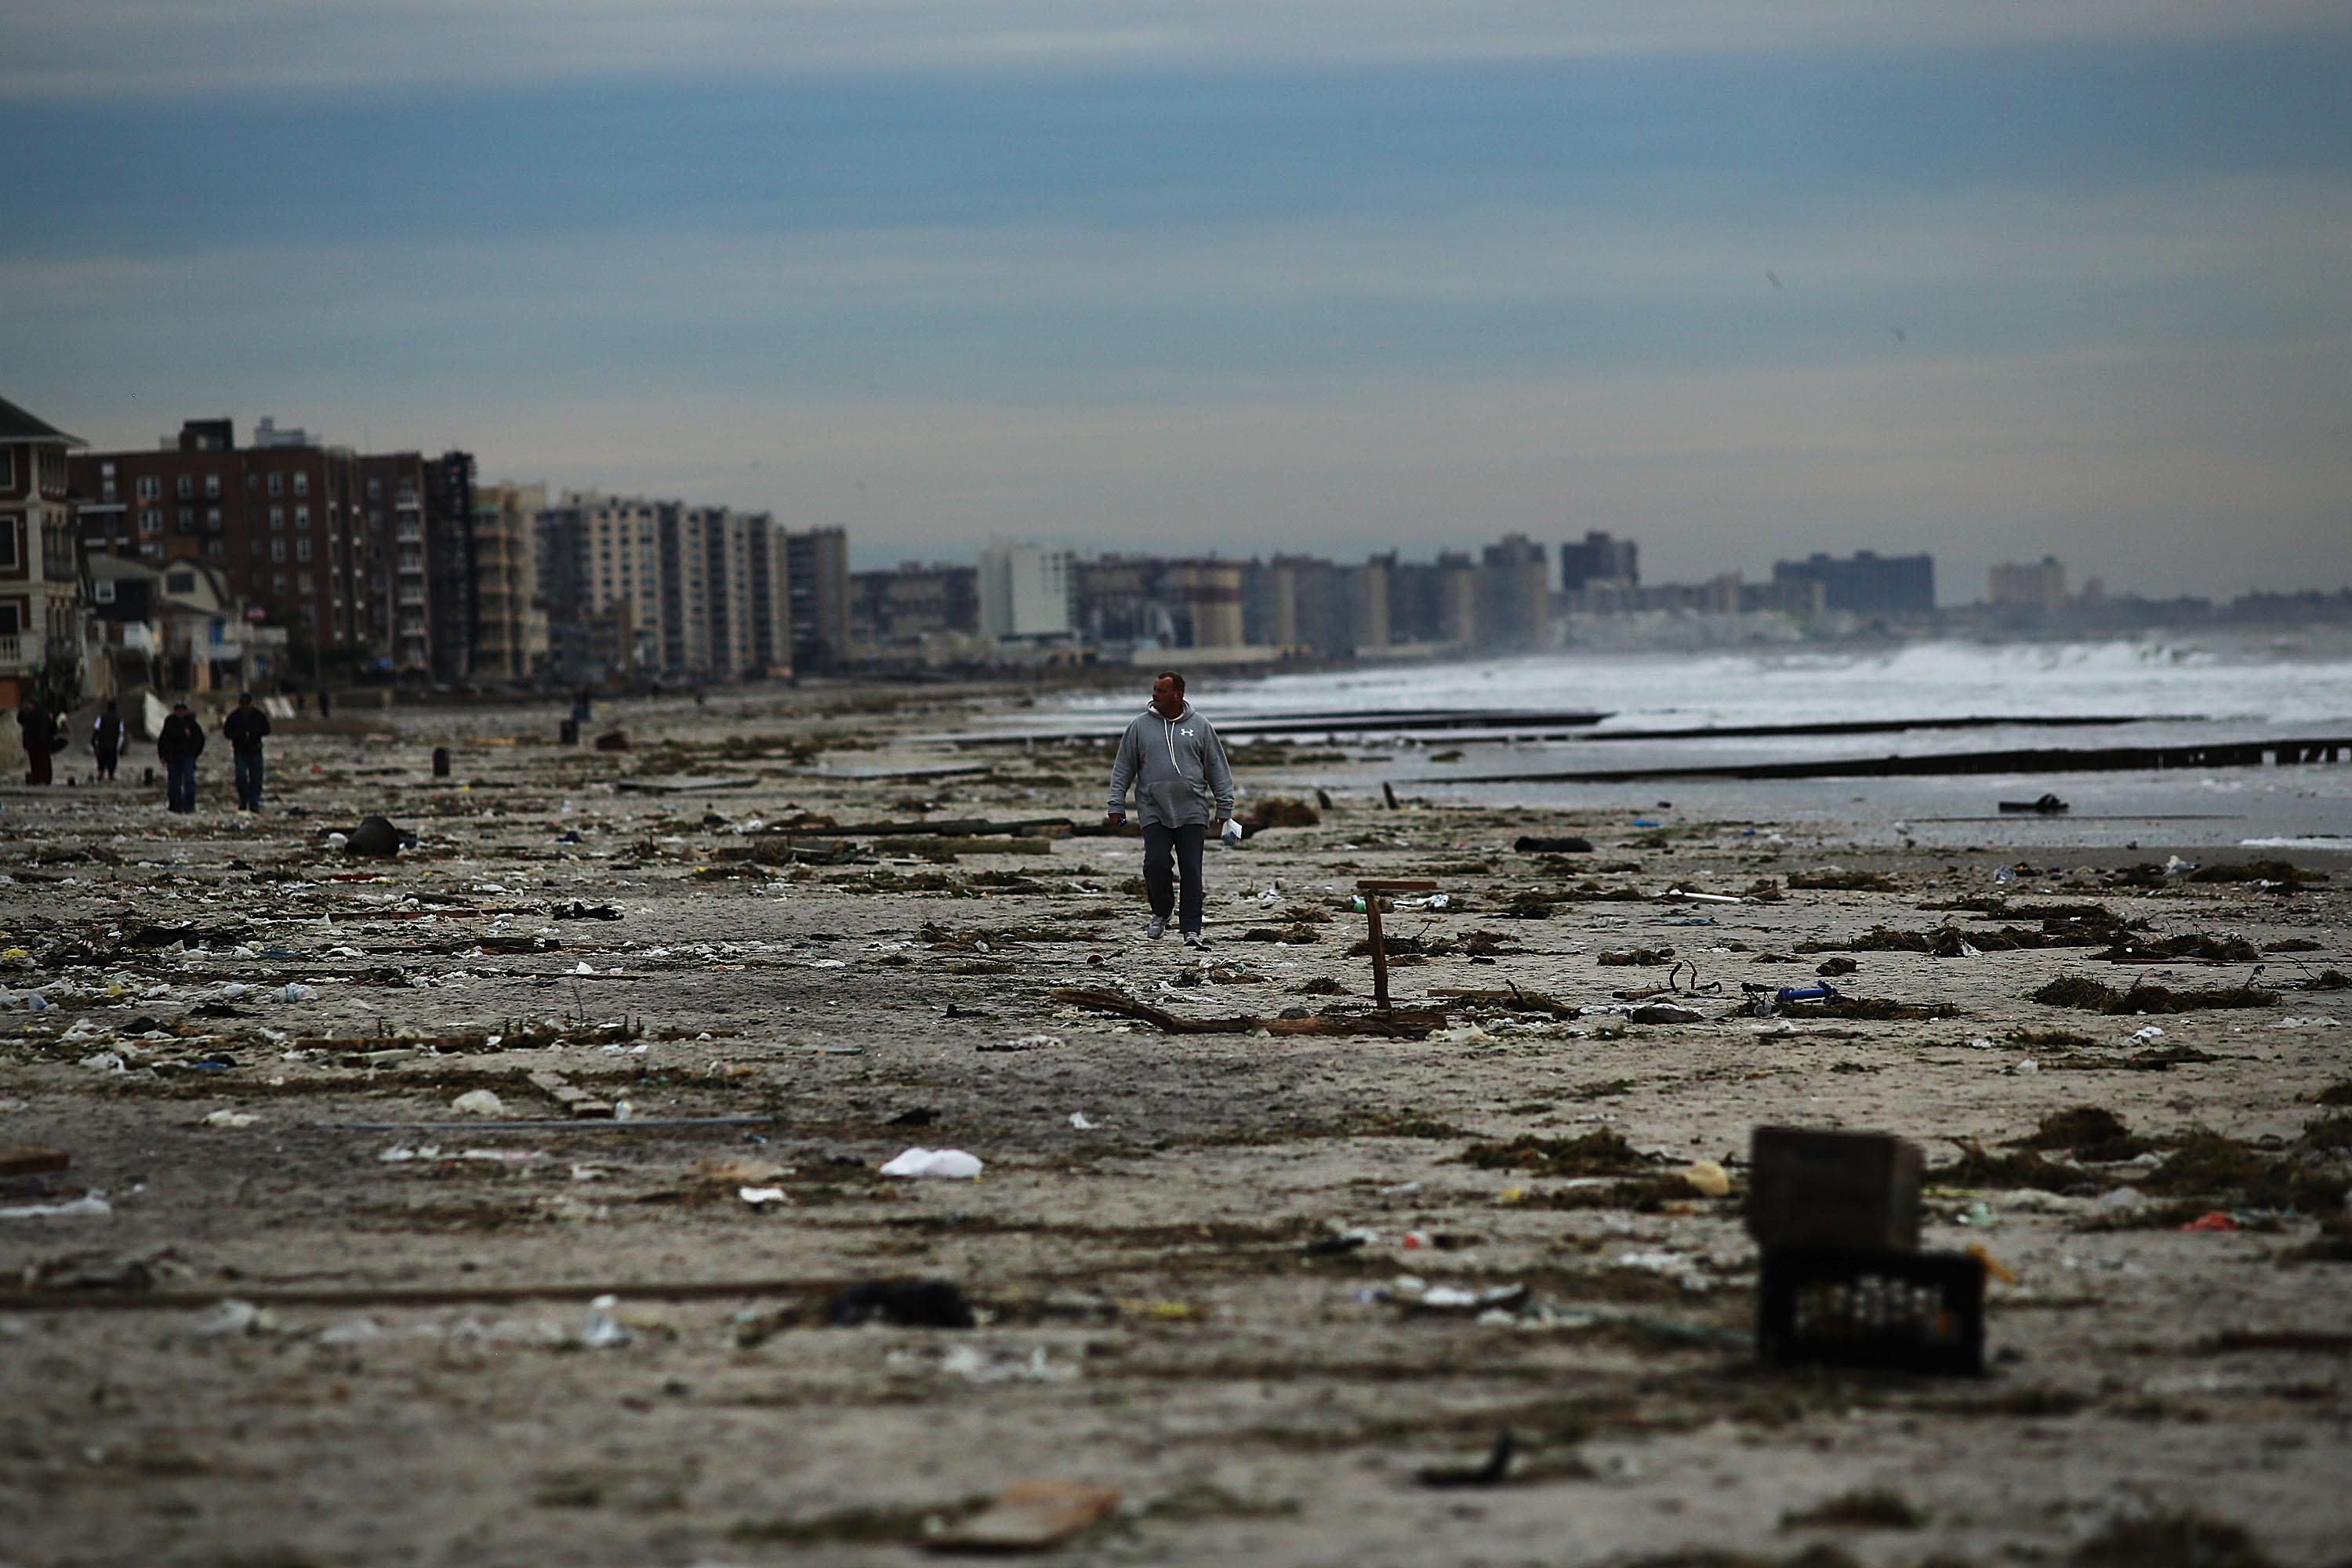 A man walks along the beach in the heavily damaged Rockaway neighborhood, in Queens where a large section of the iconic boardwalk was washed away on November 2, 2012 in New York.